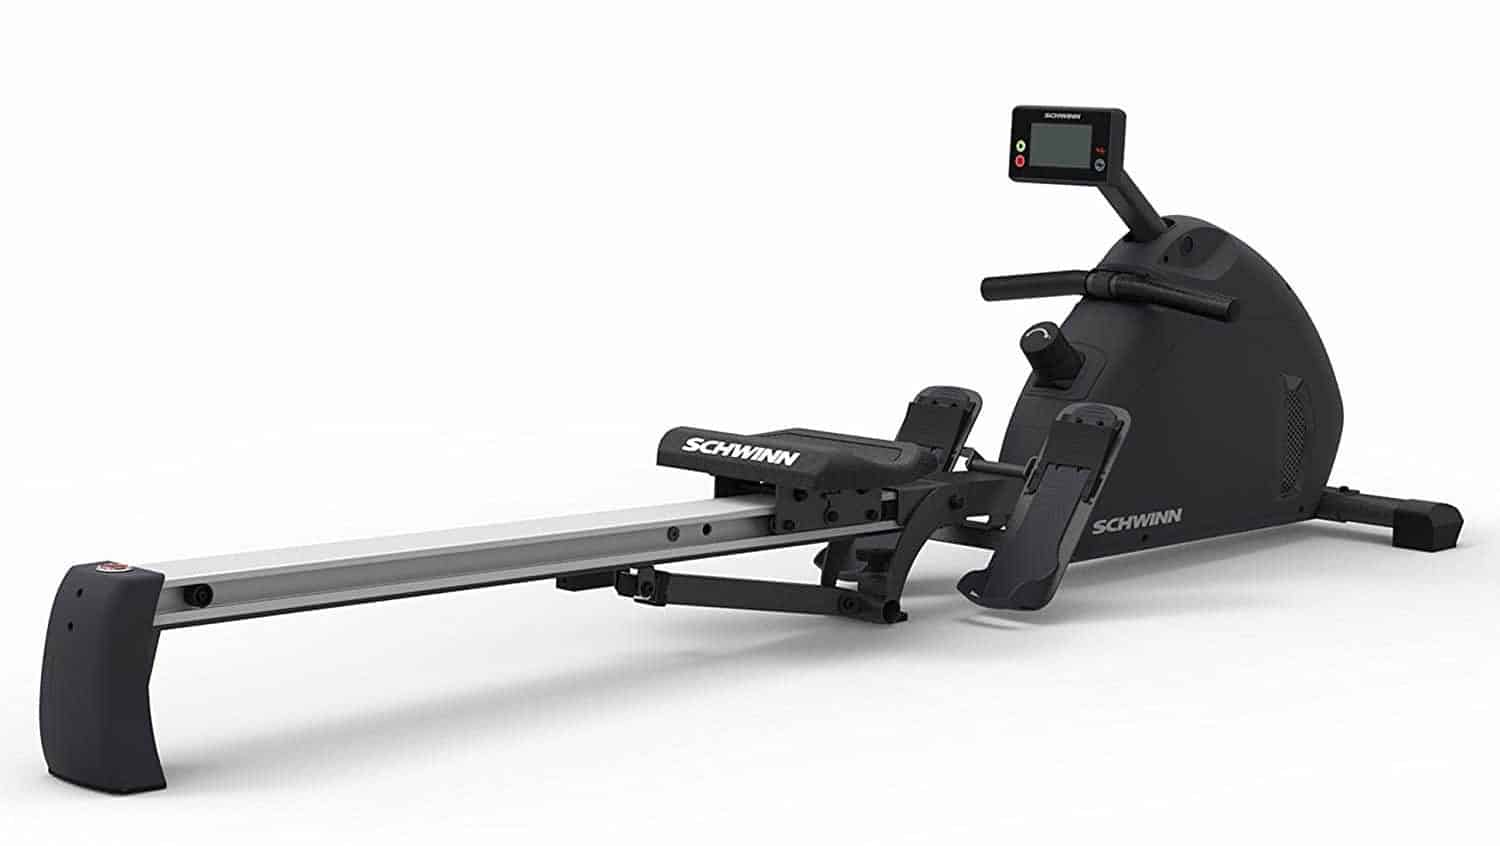 Schwinn Crewmaster Magnetic Rowing Machine Review